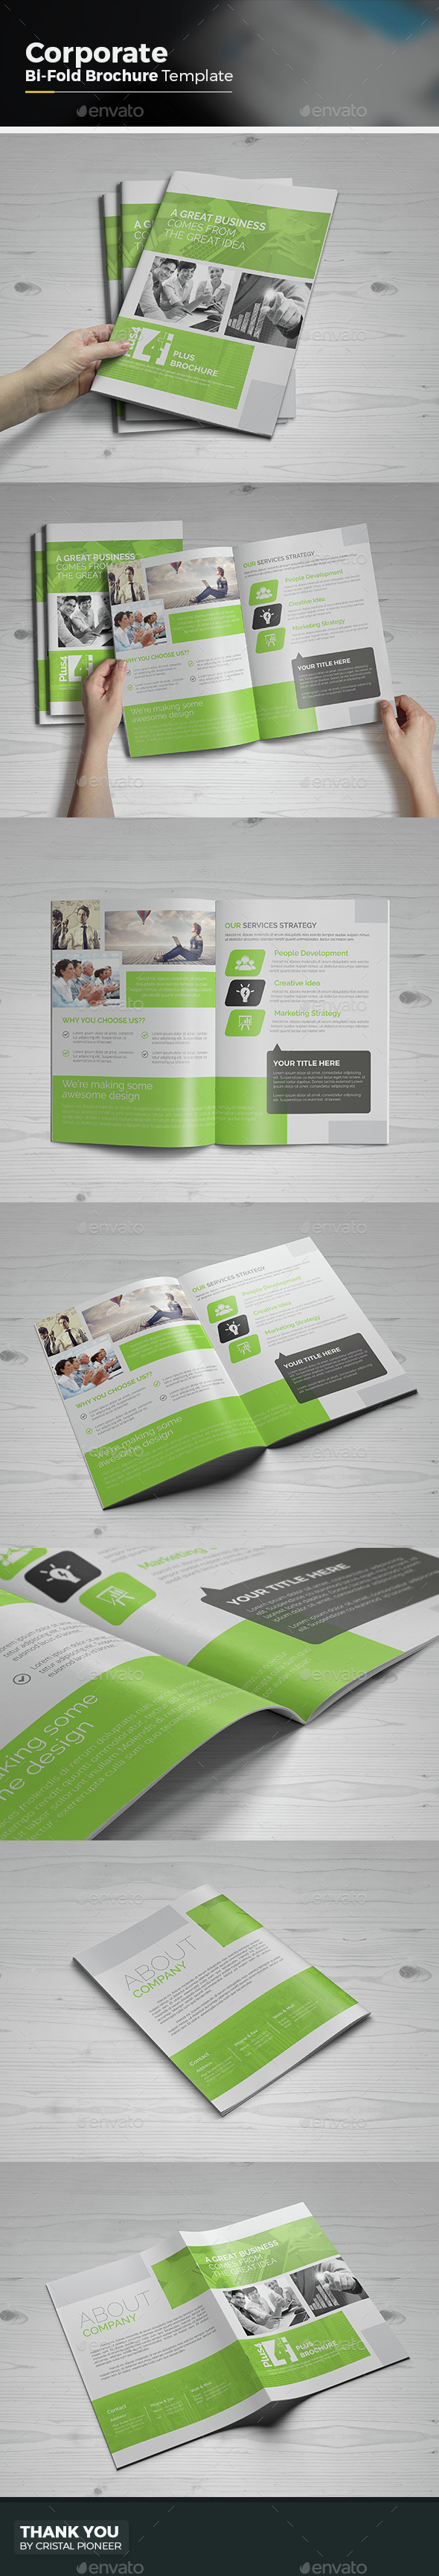 Corporate Bi Fold Brochure Template - Corporate Brochures